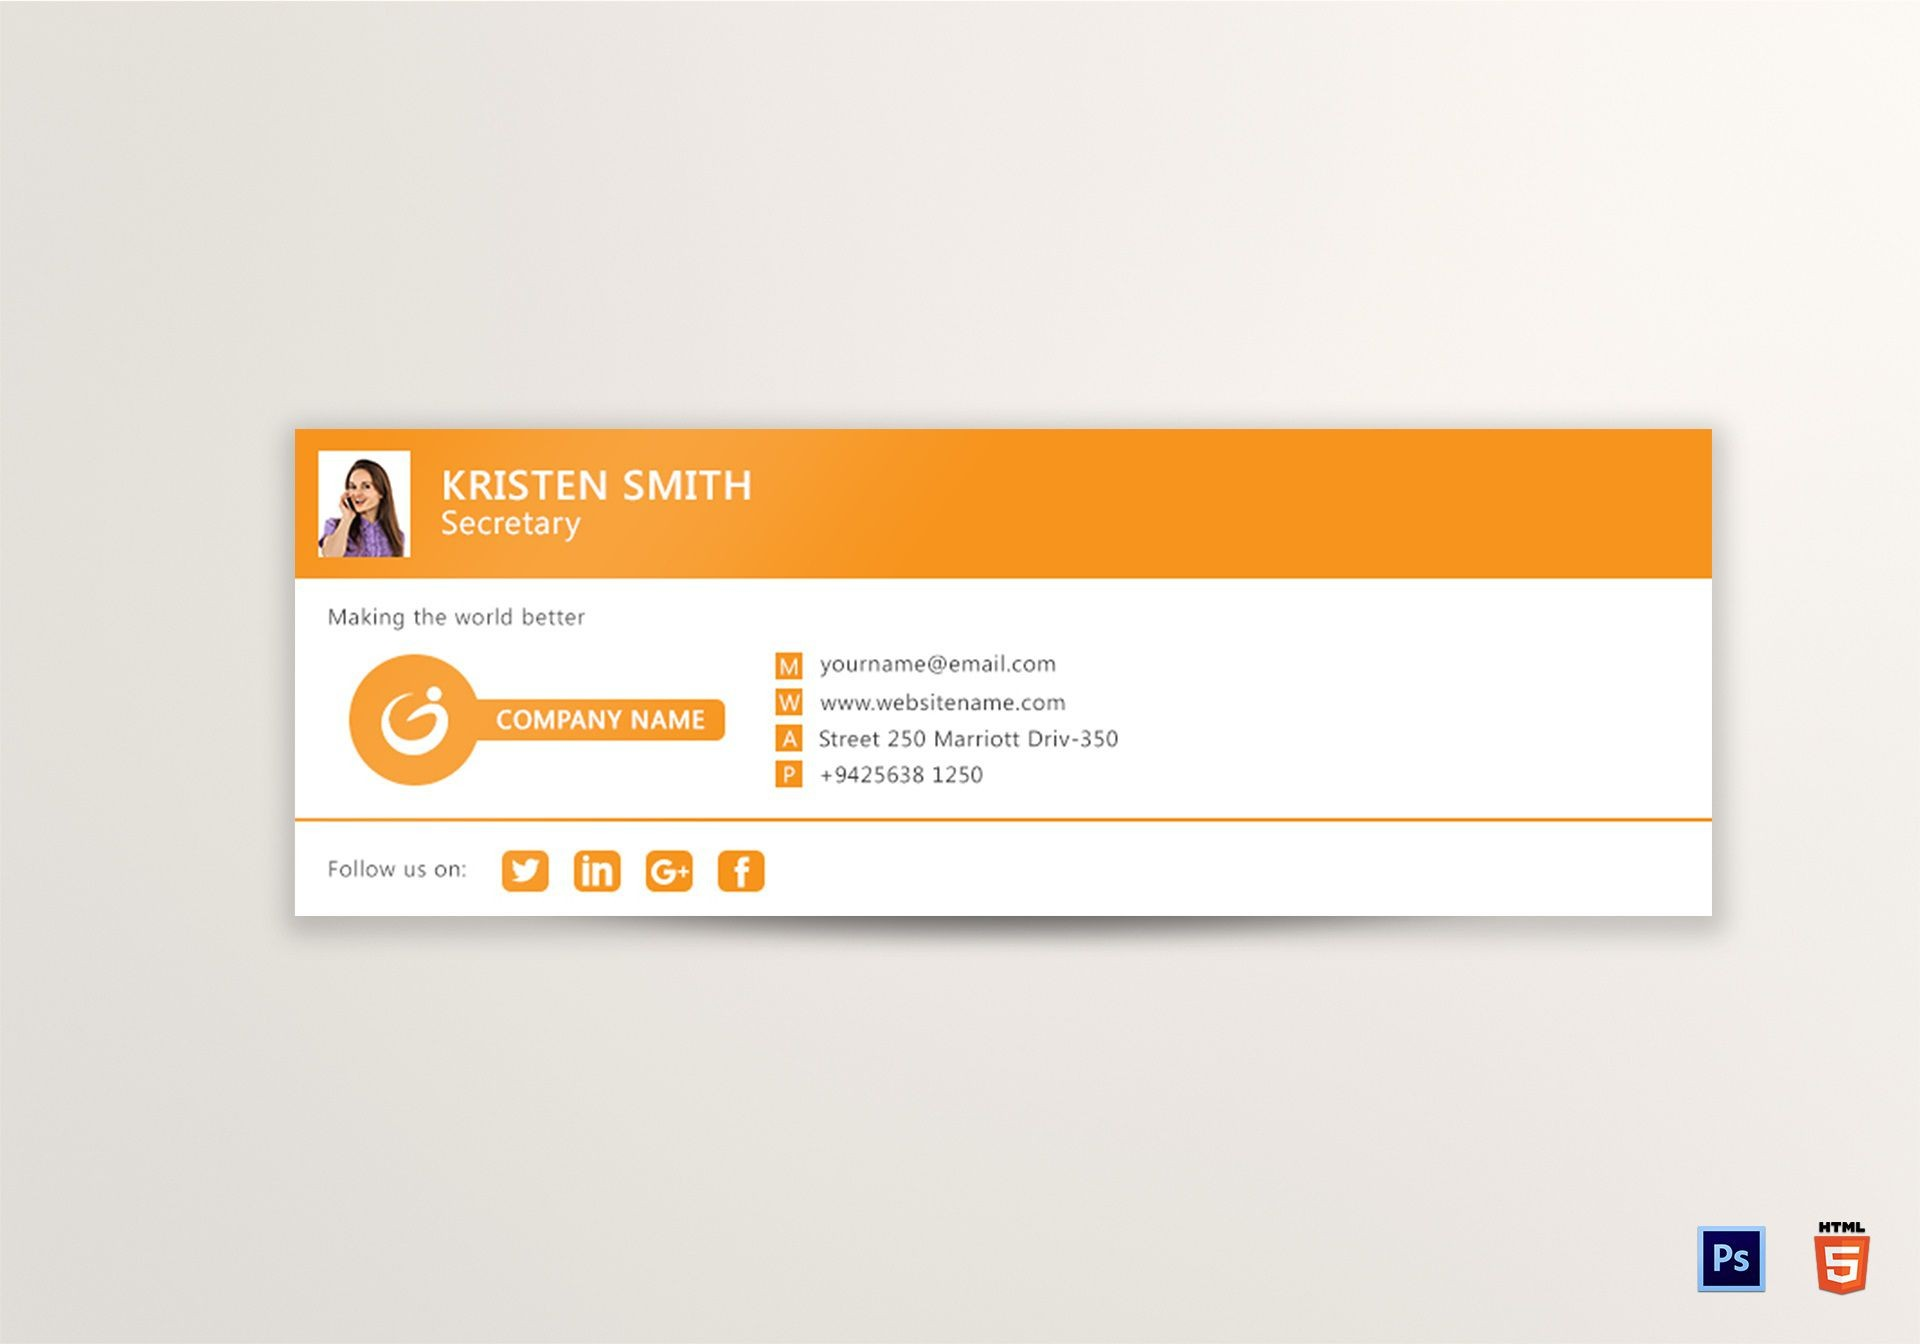 010 Stunning Email Signature Format For Outlook High Resolution  Example Template Microsoft1920